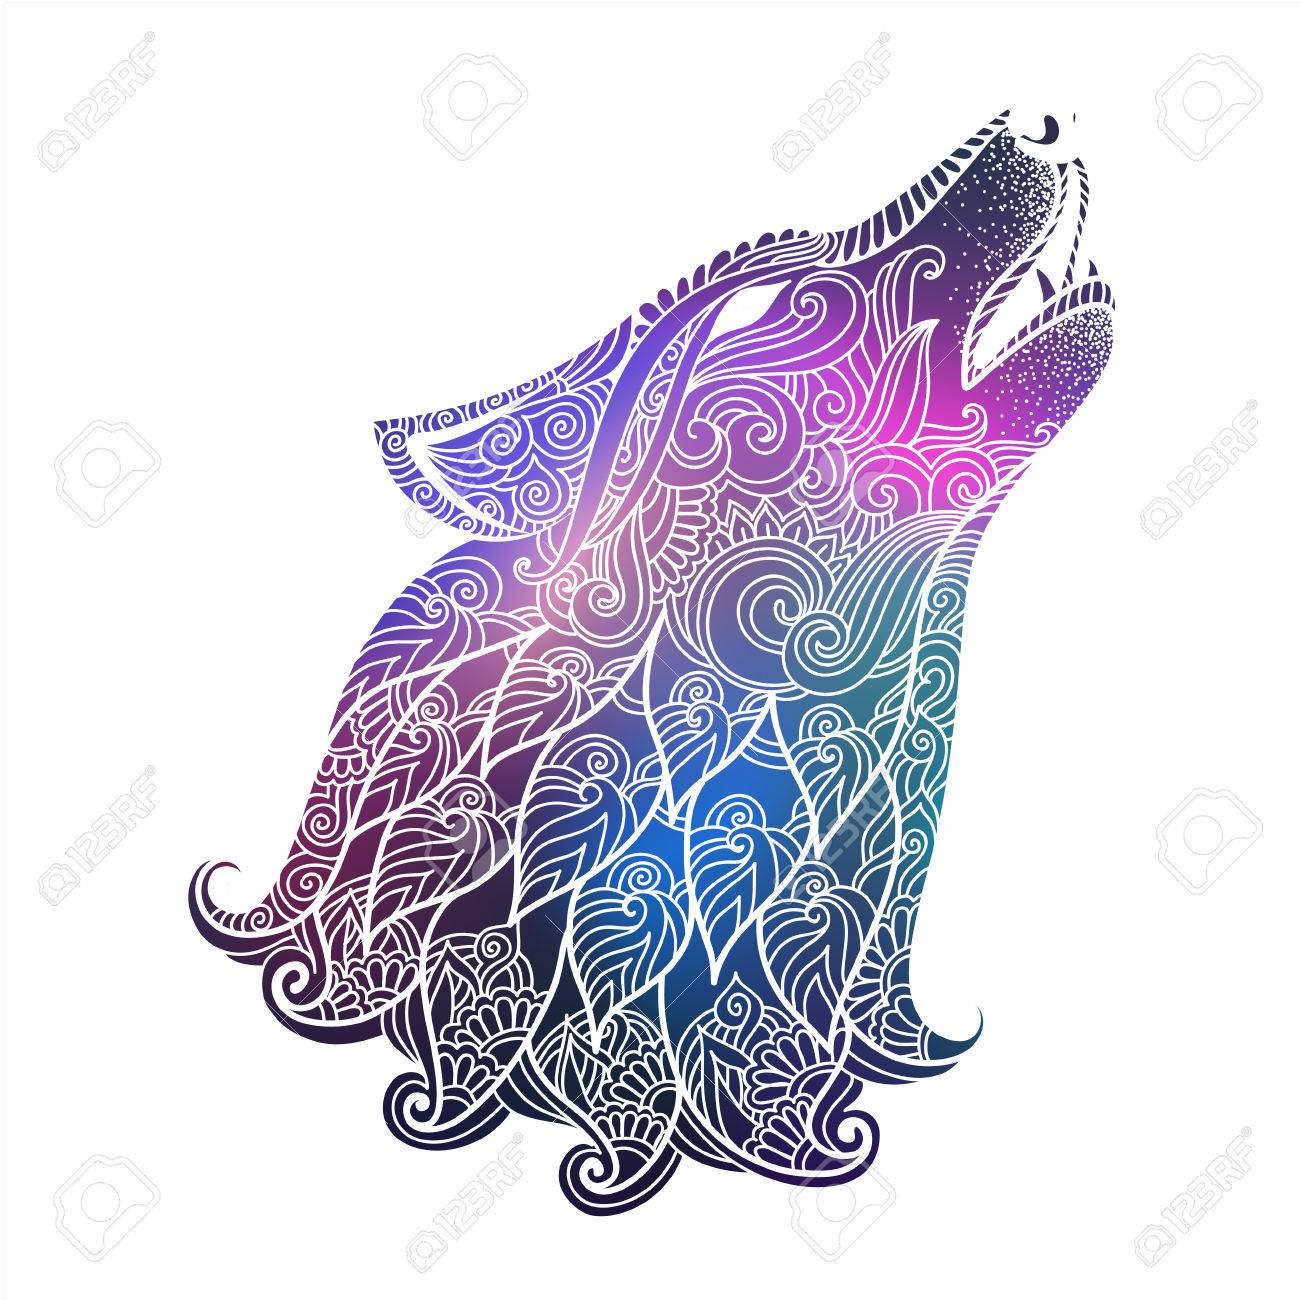 hand drawn wolf side view with ethnic floral doodle pattern zentangle style on galaxy background with